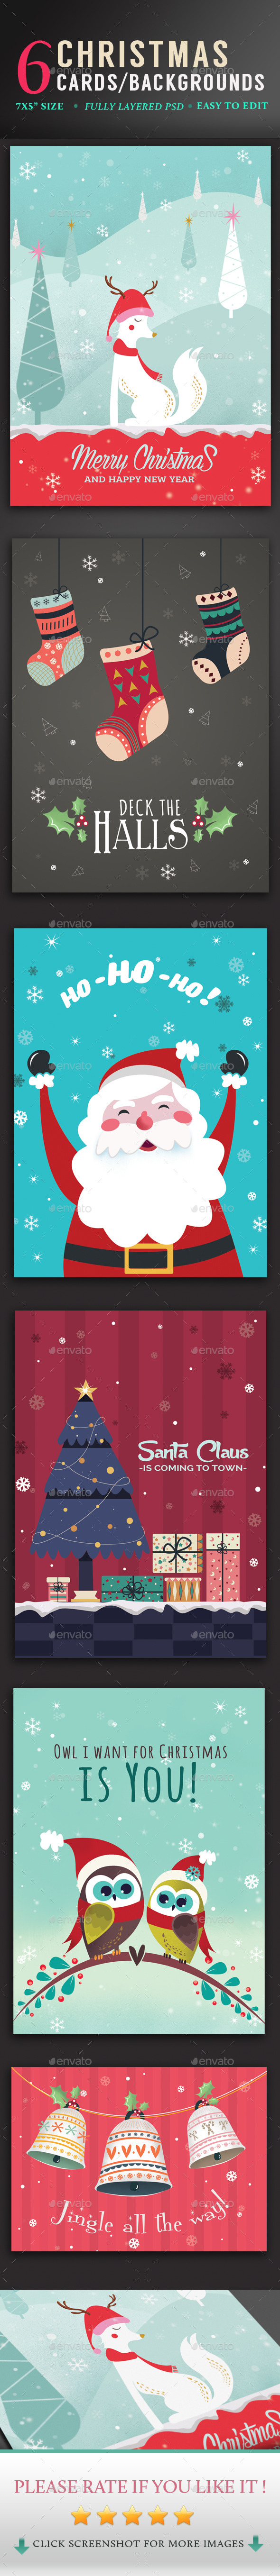 GraphicRiver Christmas Cards Backgrounds Set 9434765